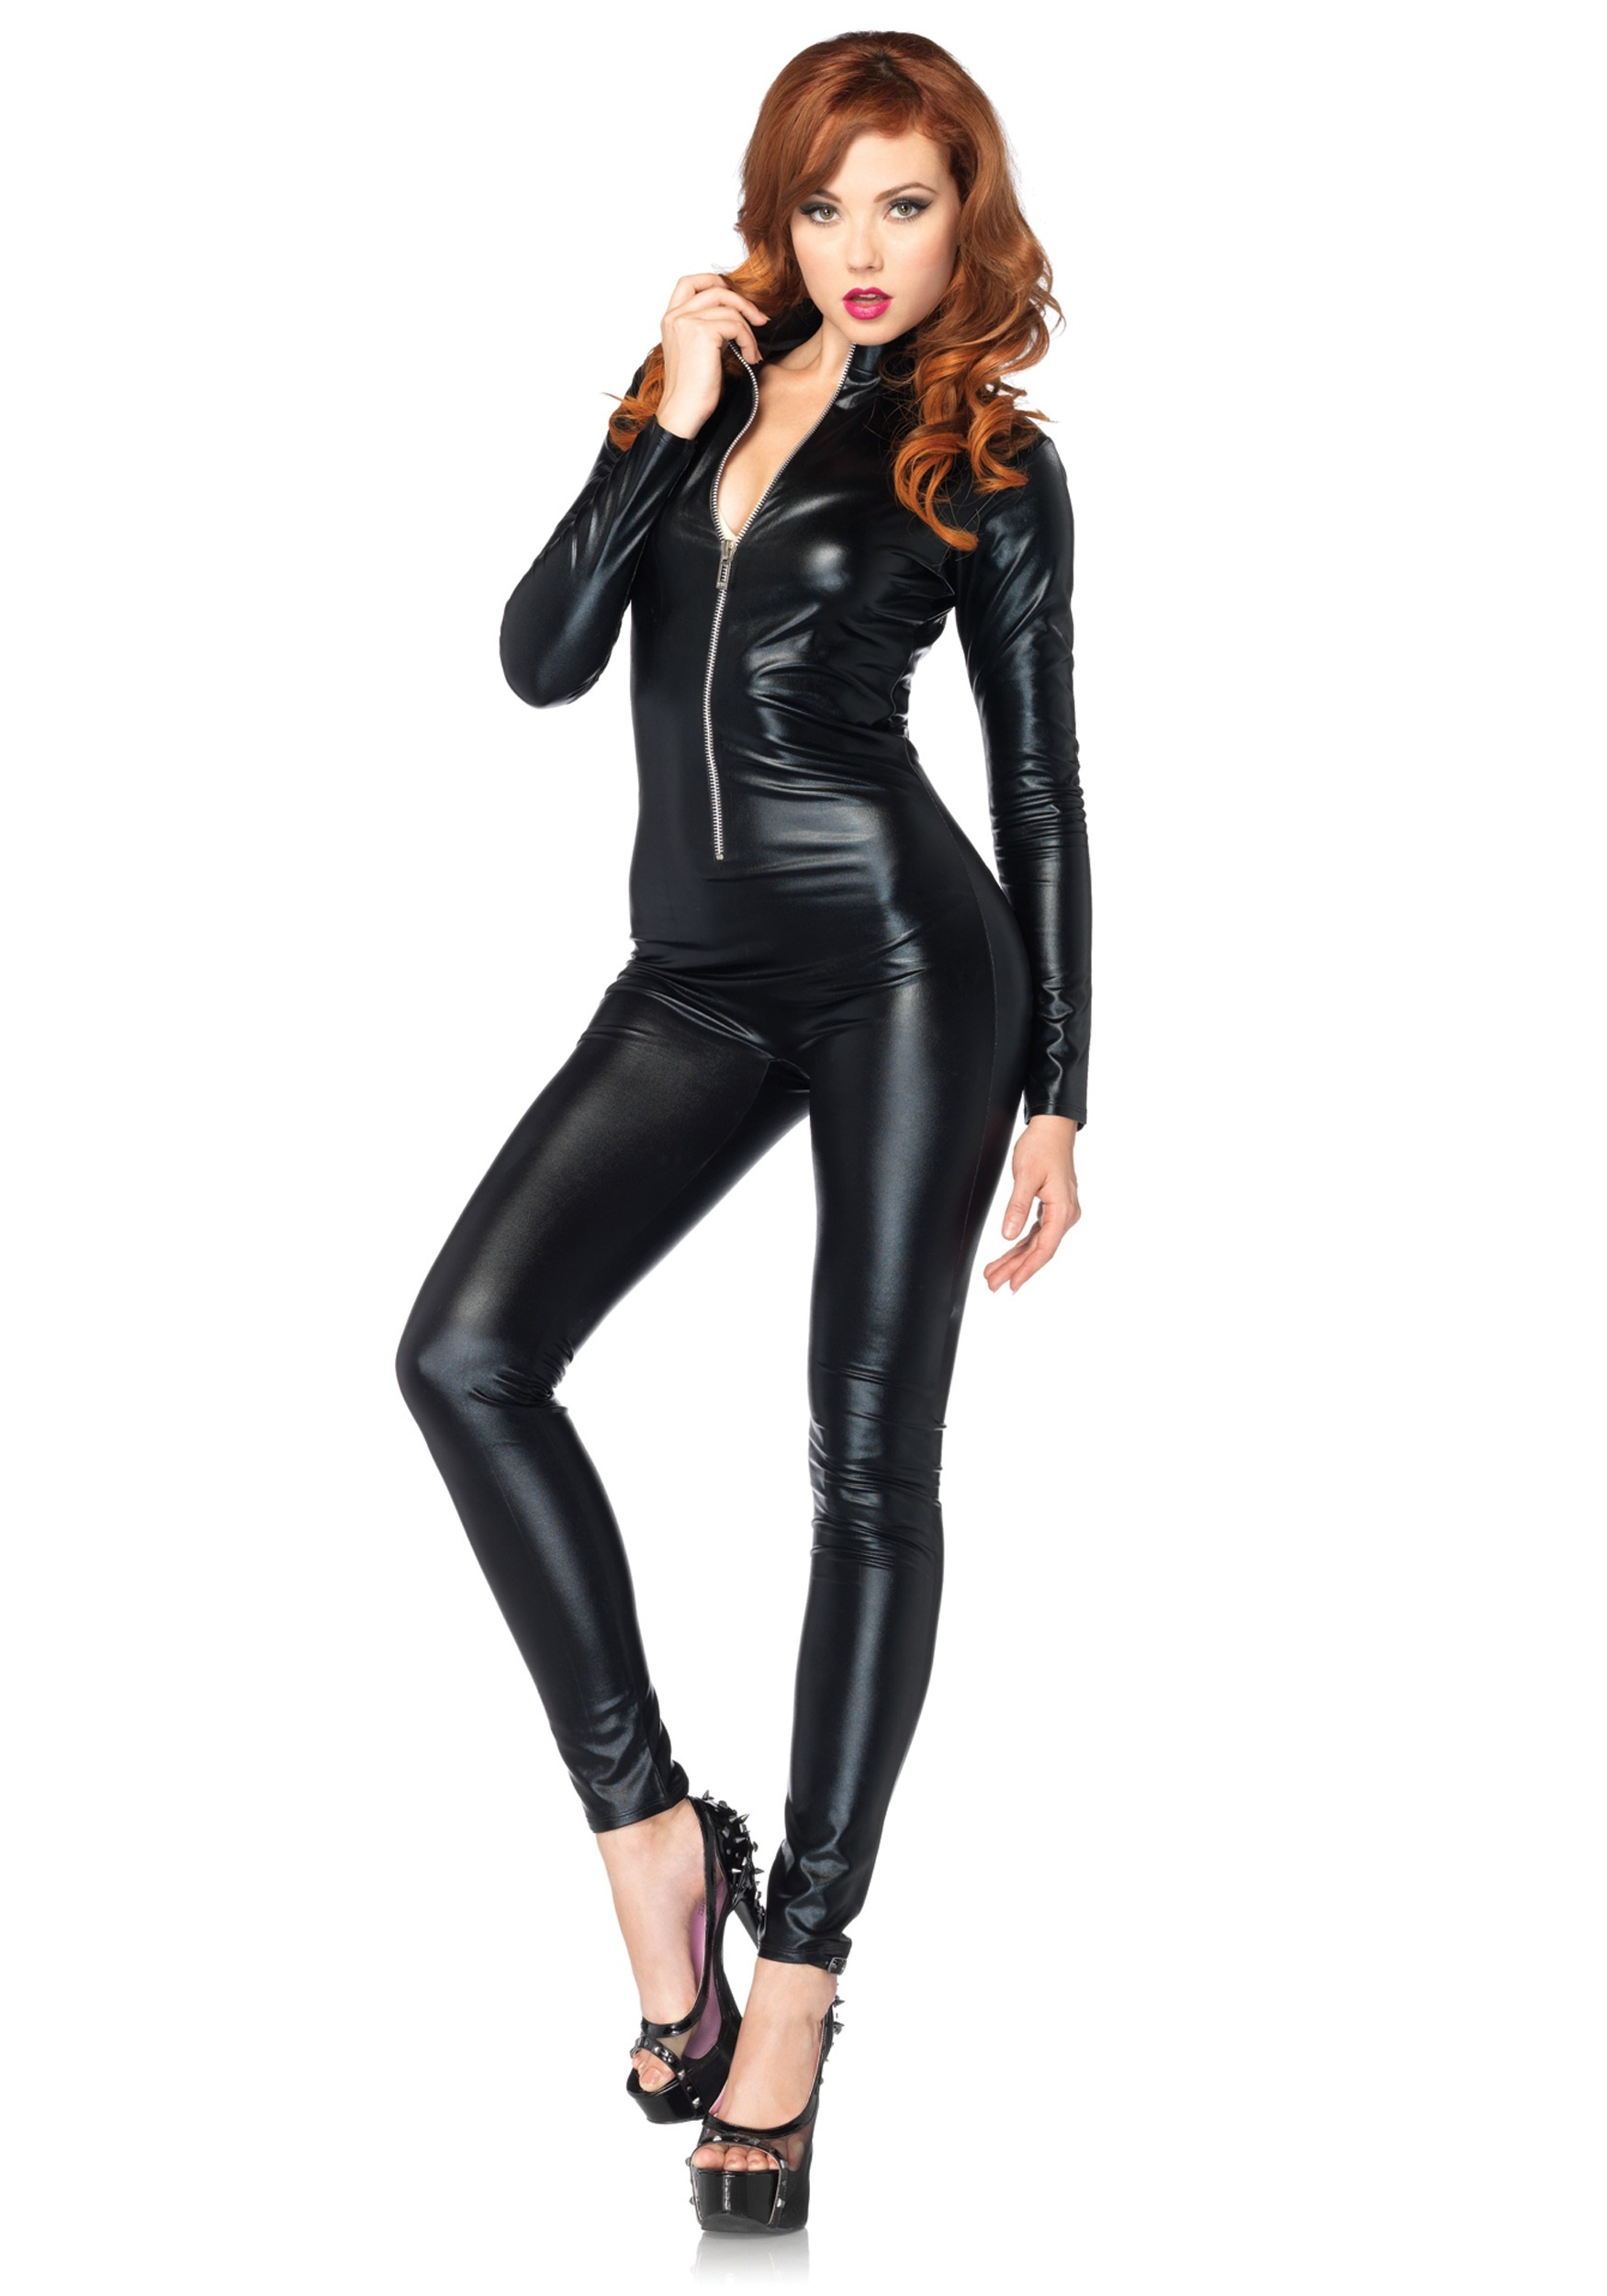 Find great deals on eBay for catsuit. Shop with confidence.